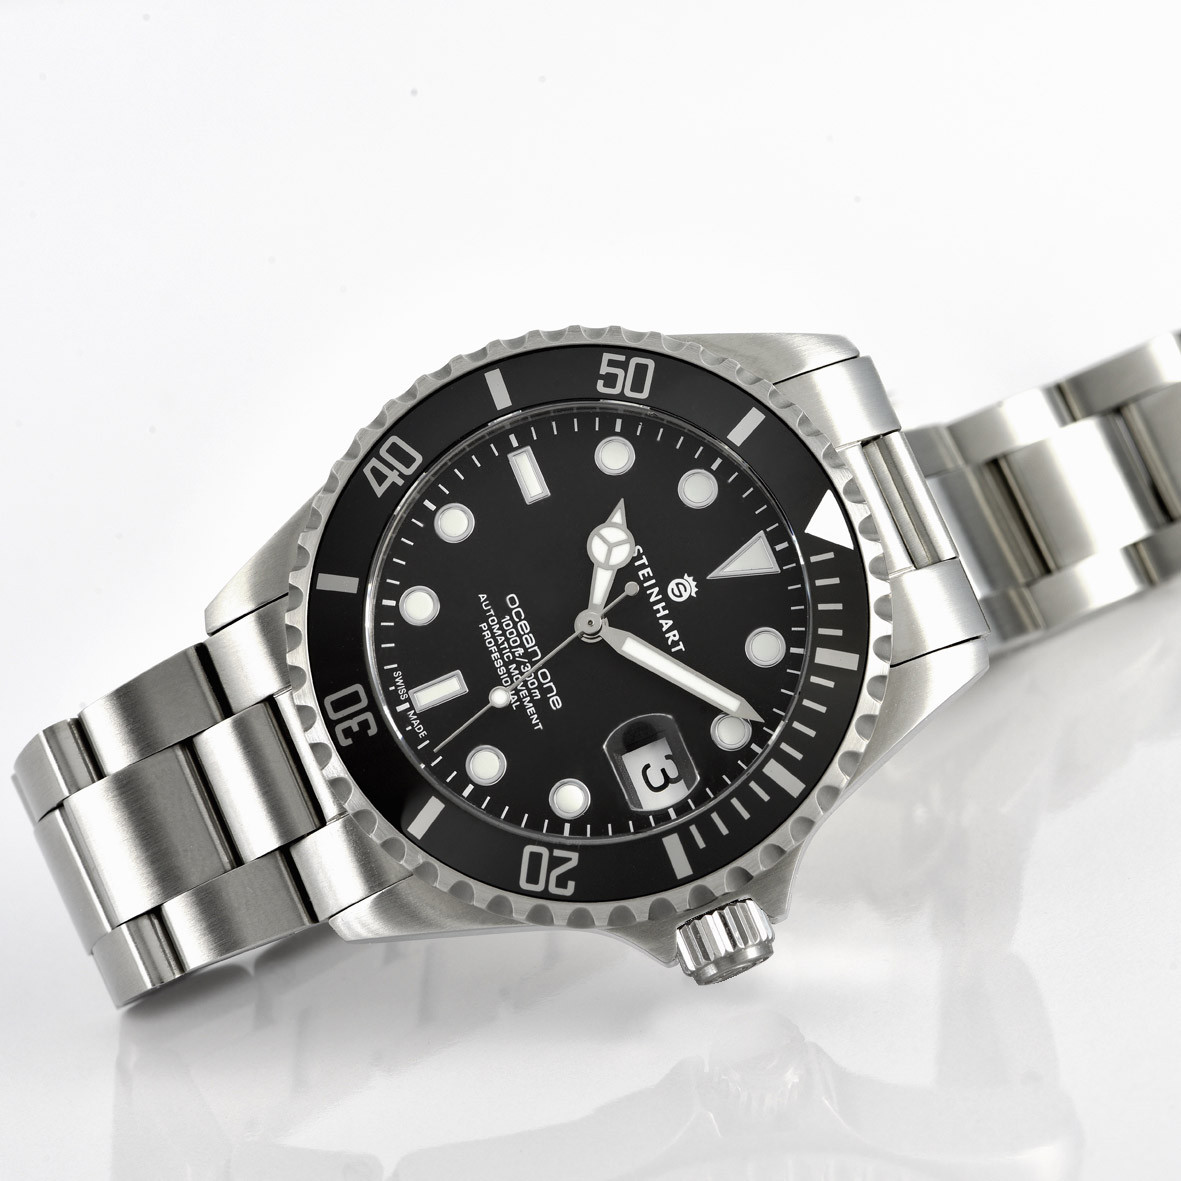 Image result for steinhart ocean one